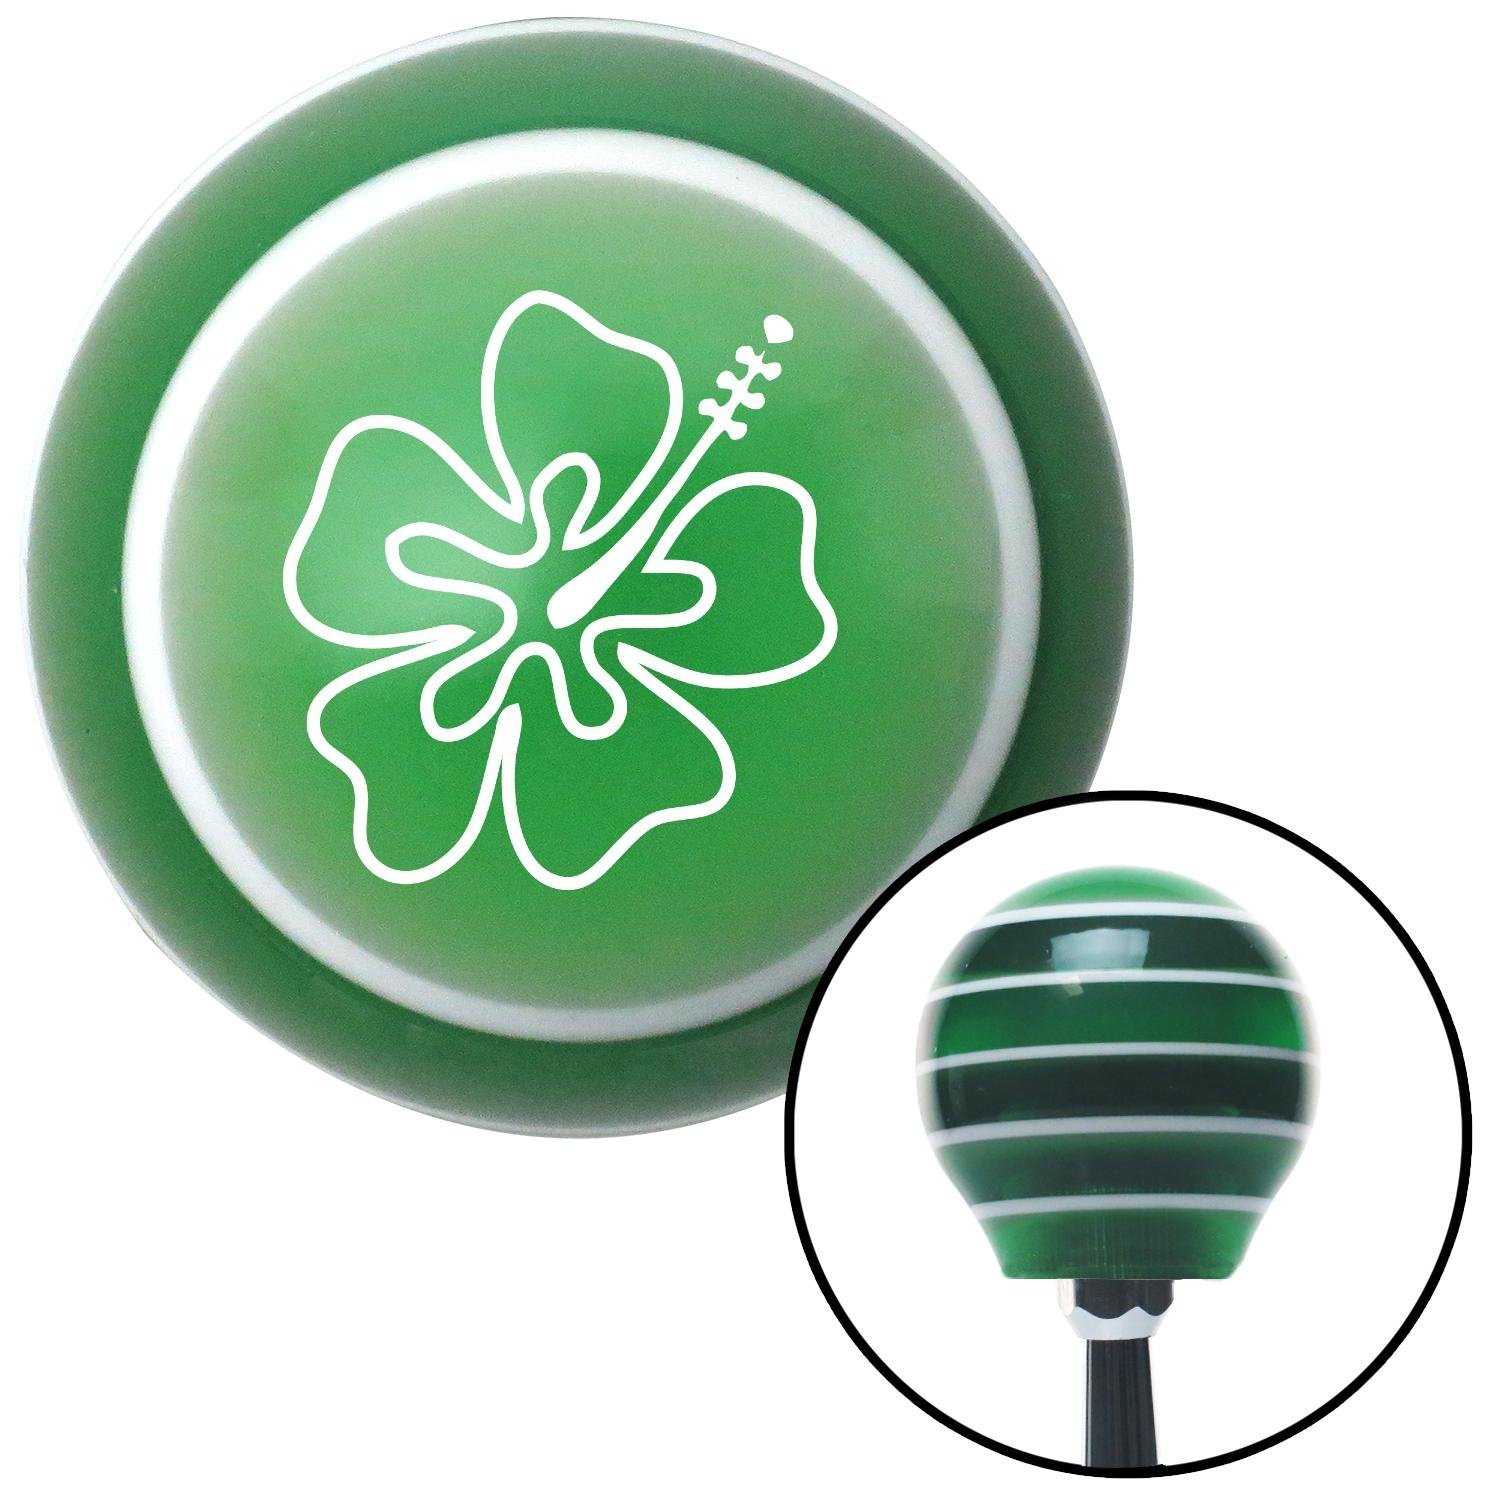 American Shifter 122958 Green Stripe Shift Knob with M16 x 1.5 Insert White Hawaiian Flower #8